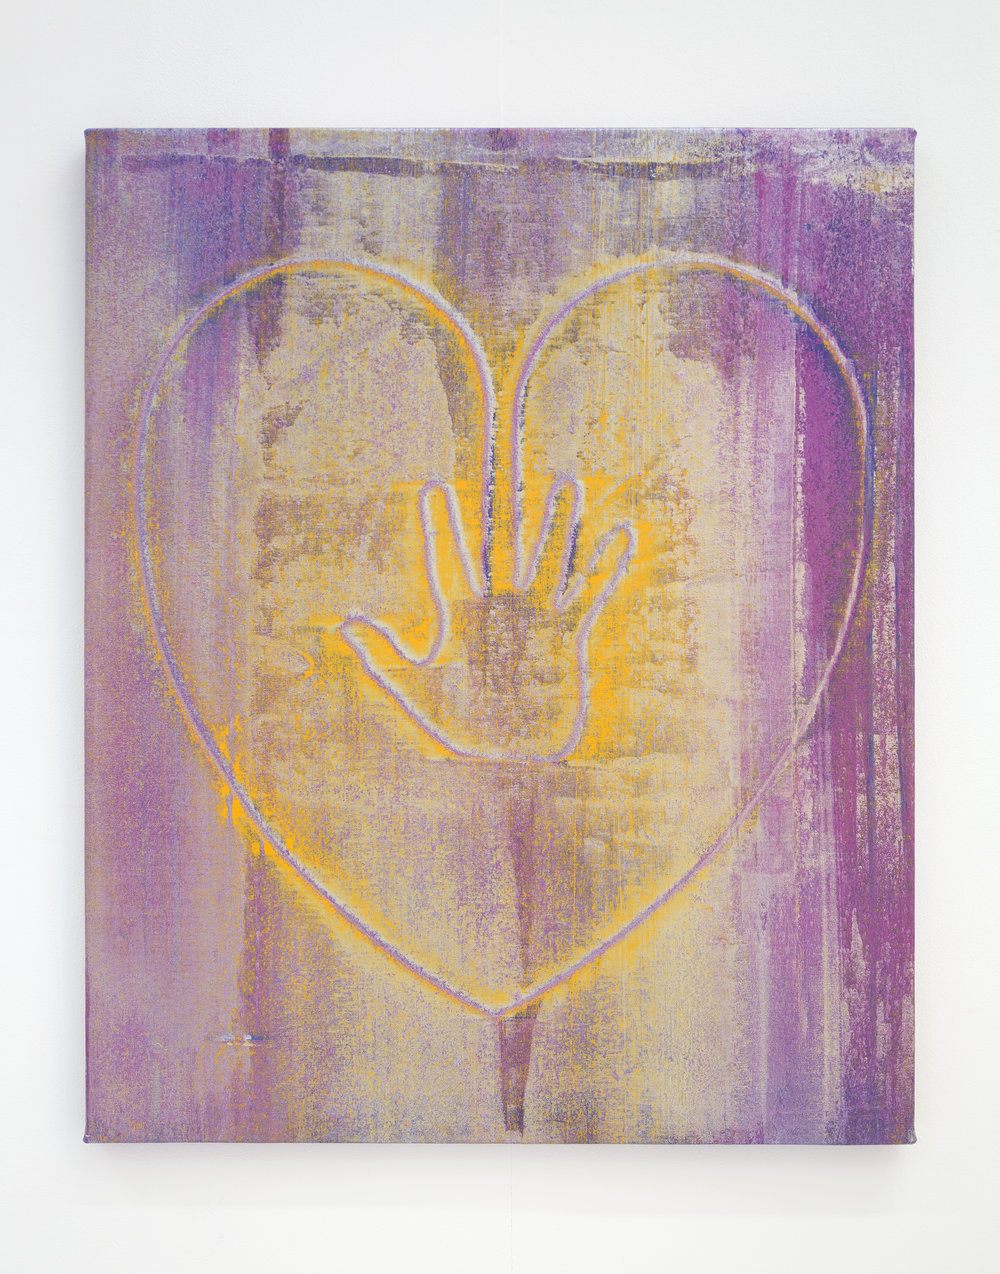 Hand on Heart (Silver Pink) , 2017   acrylic on canvas  77 x 66 cm.  £1,200  [Ref. JK2]